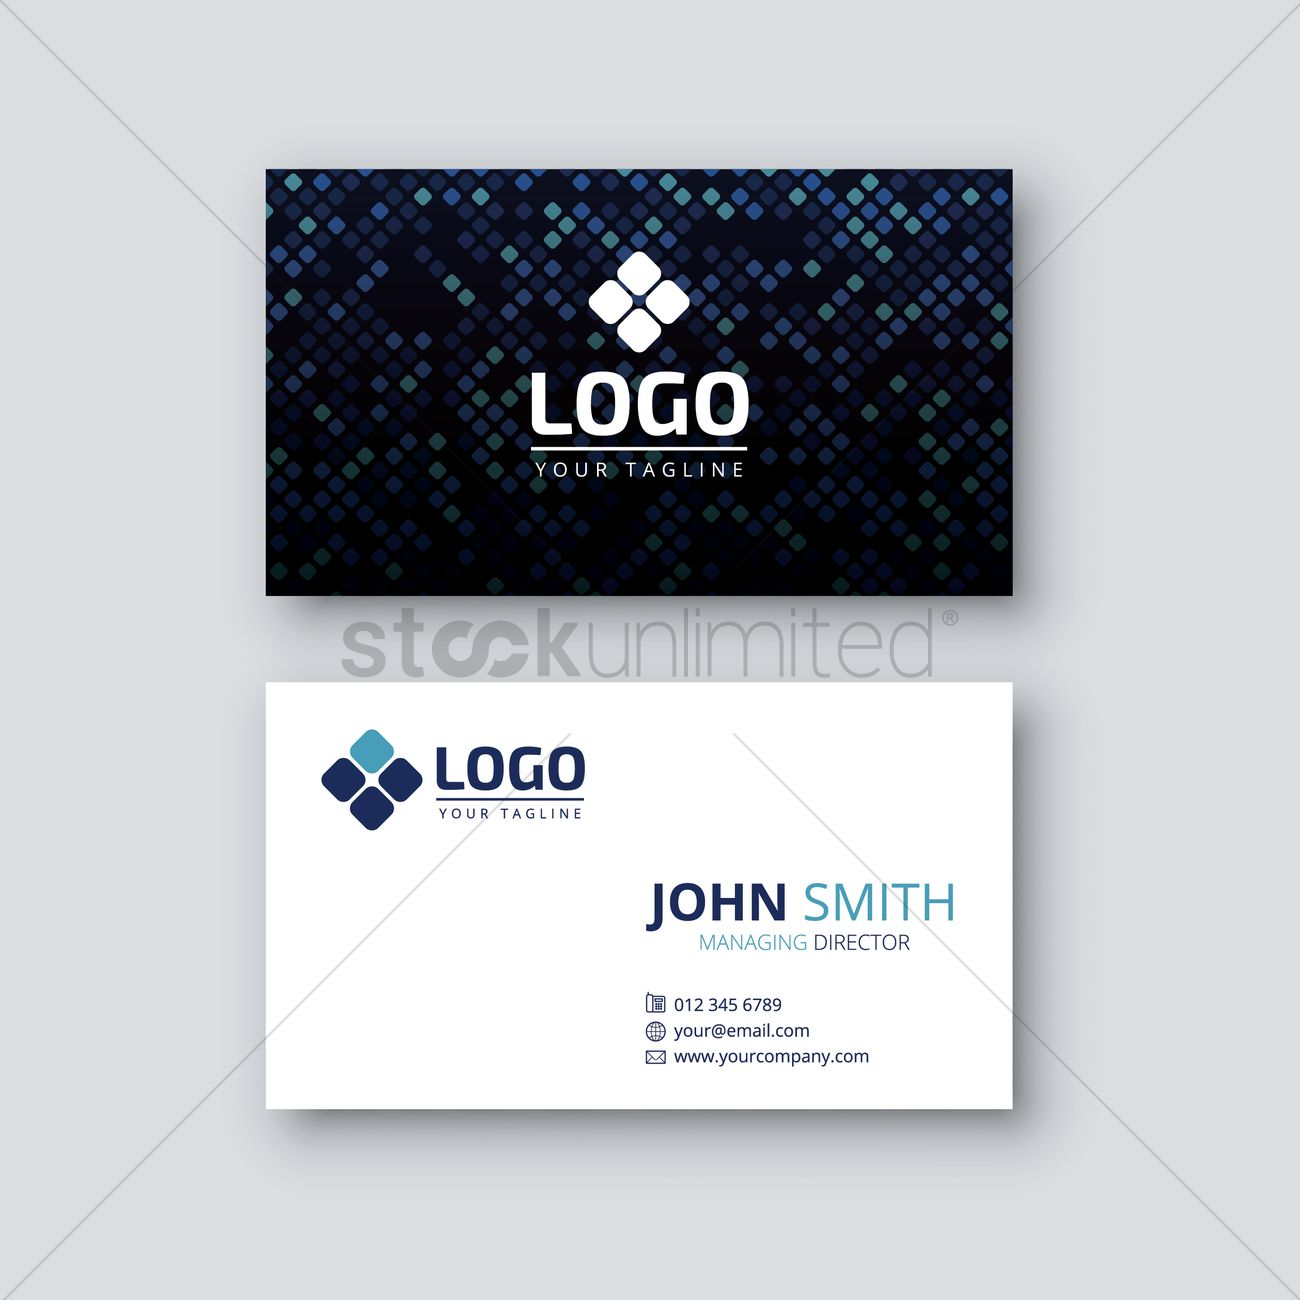 Visiting card vector image 1823273 stockunlimited visiting card vector graphic colourmoves